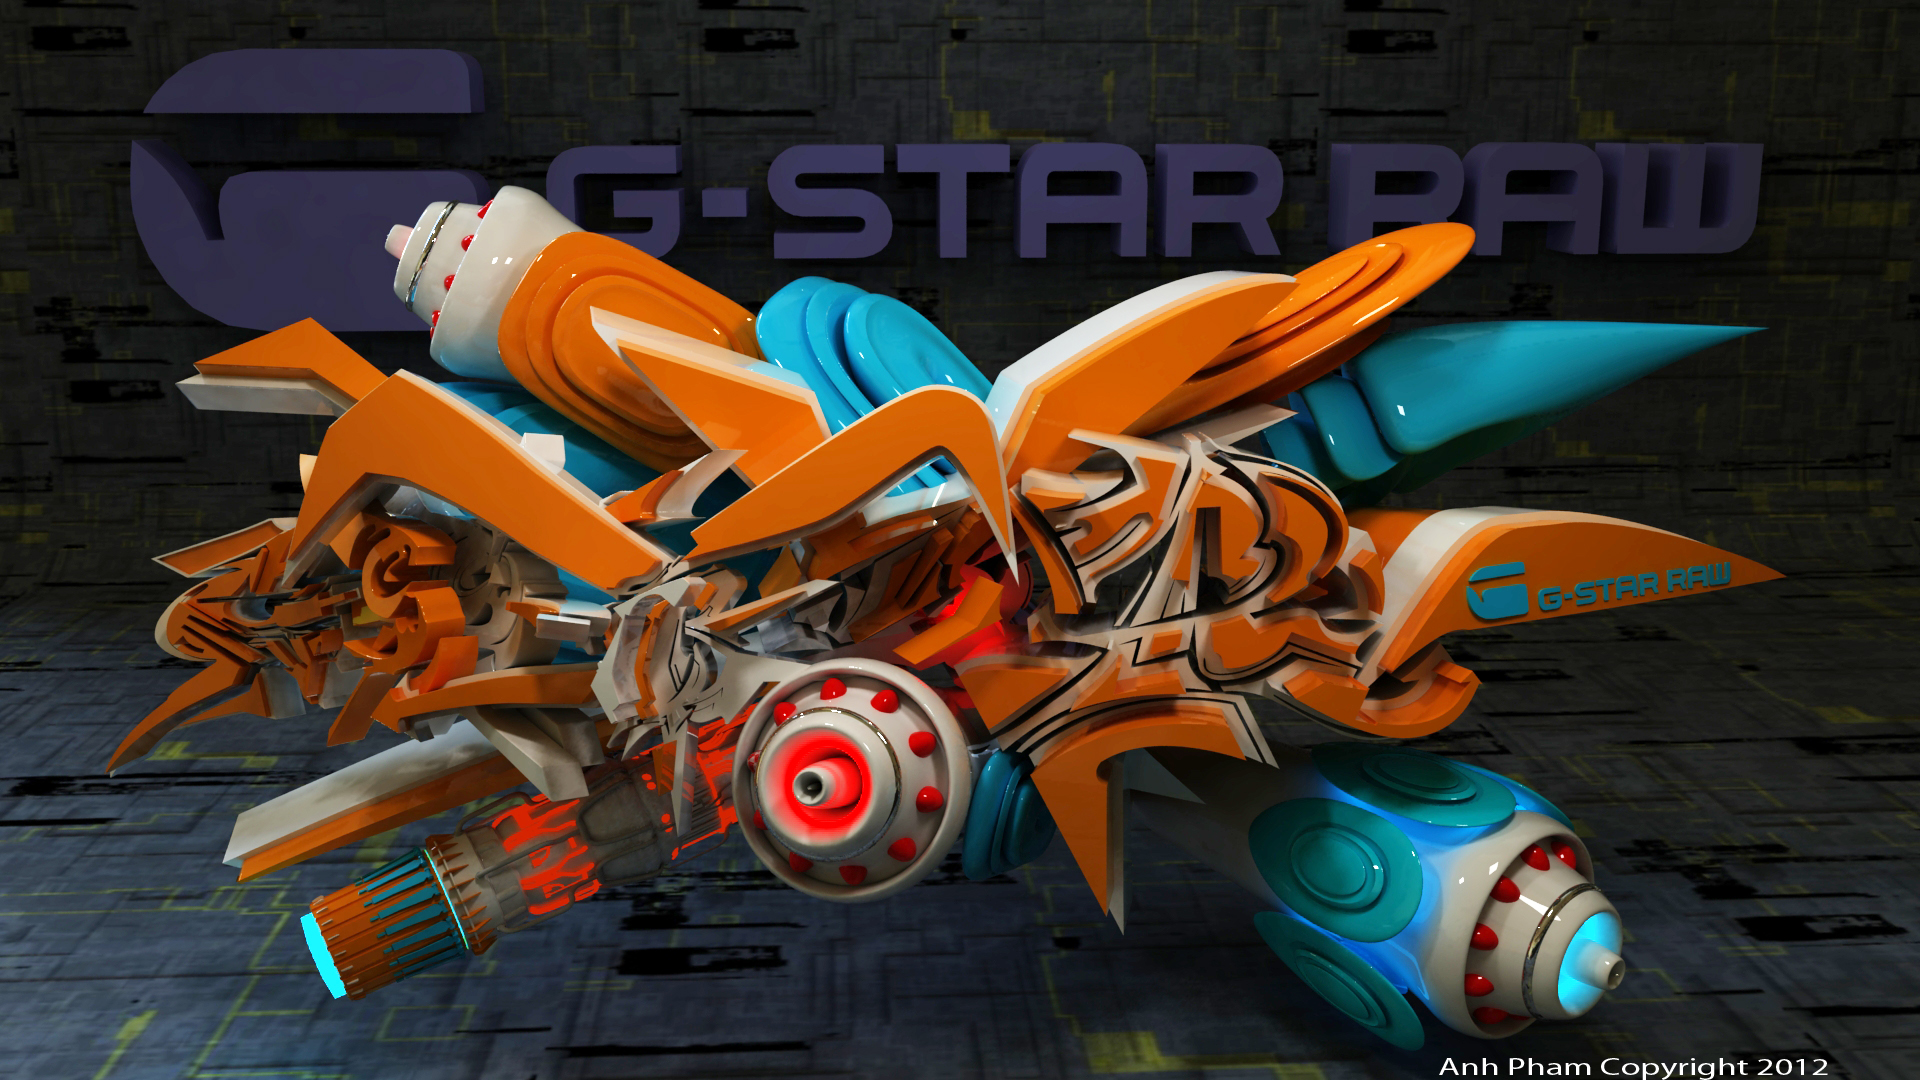 Graffiti creator for android -  G Star Raw 3d Graffiti By Anhpham88